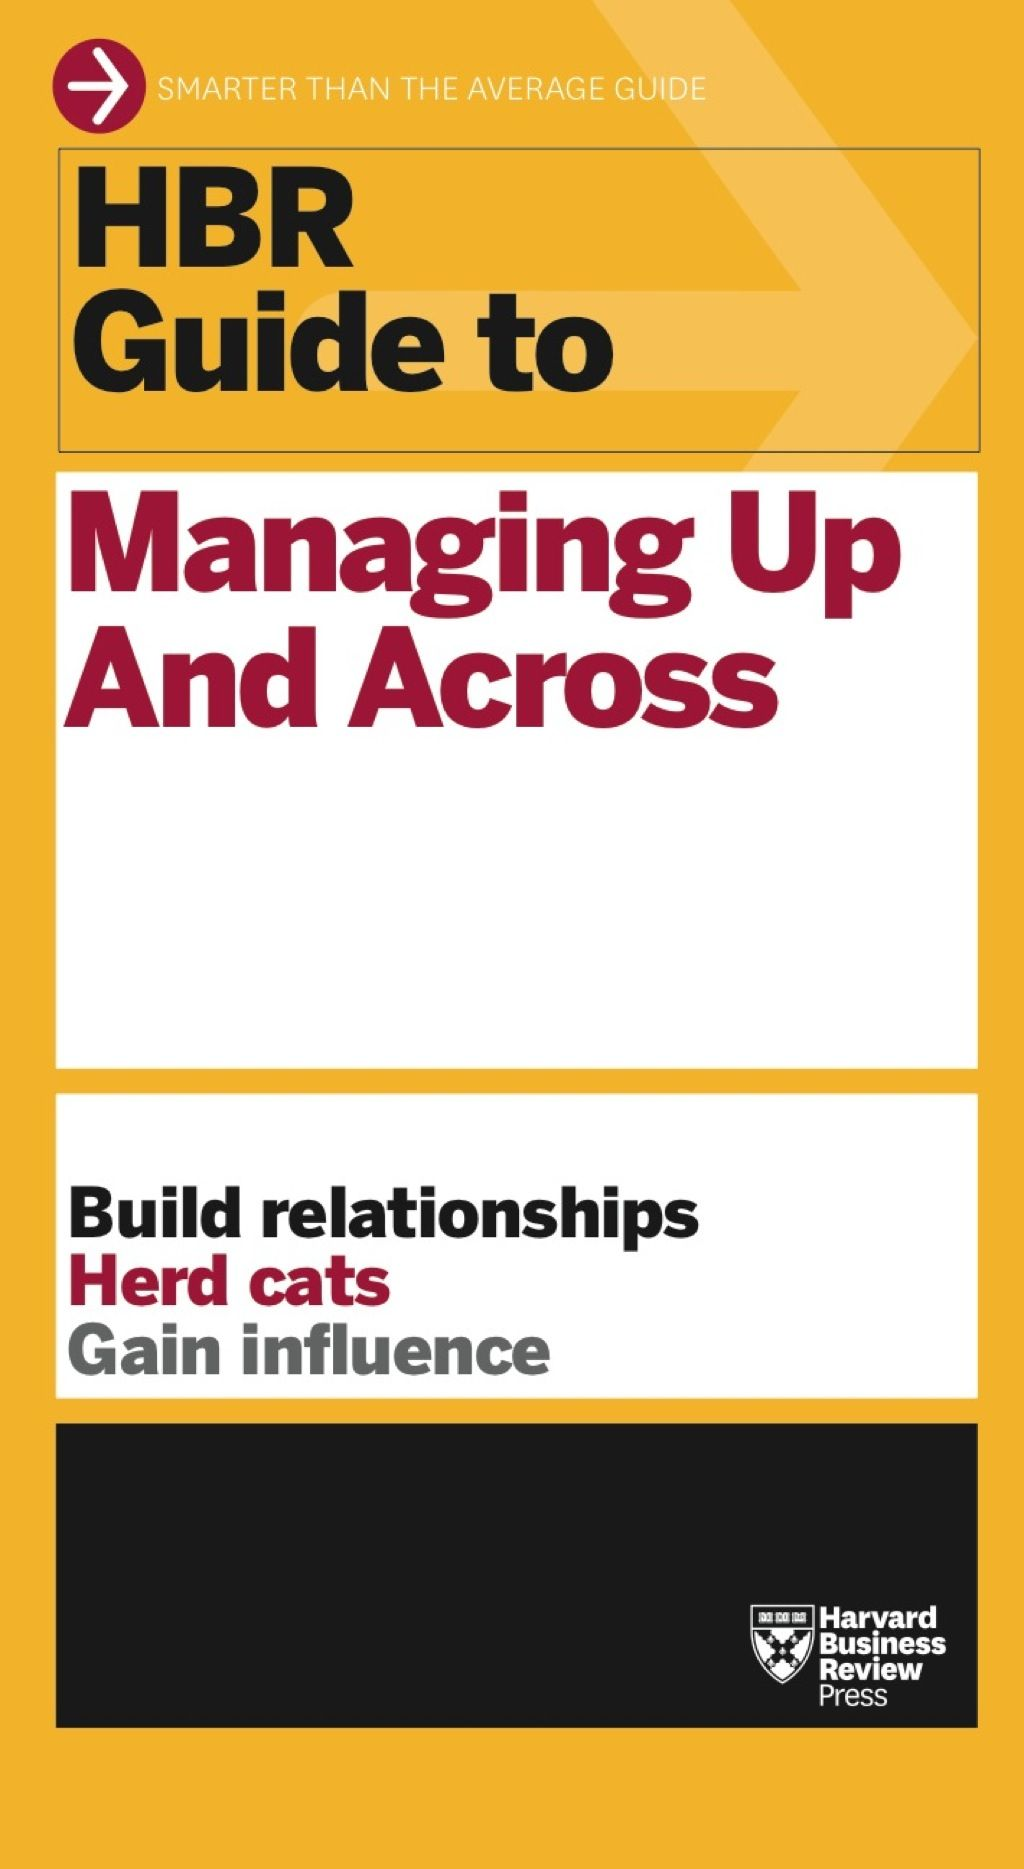 HBR Guide to Managing Up and Across (HBR Guide Series